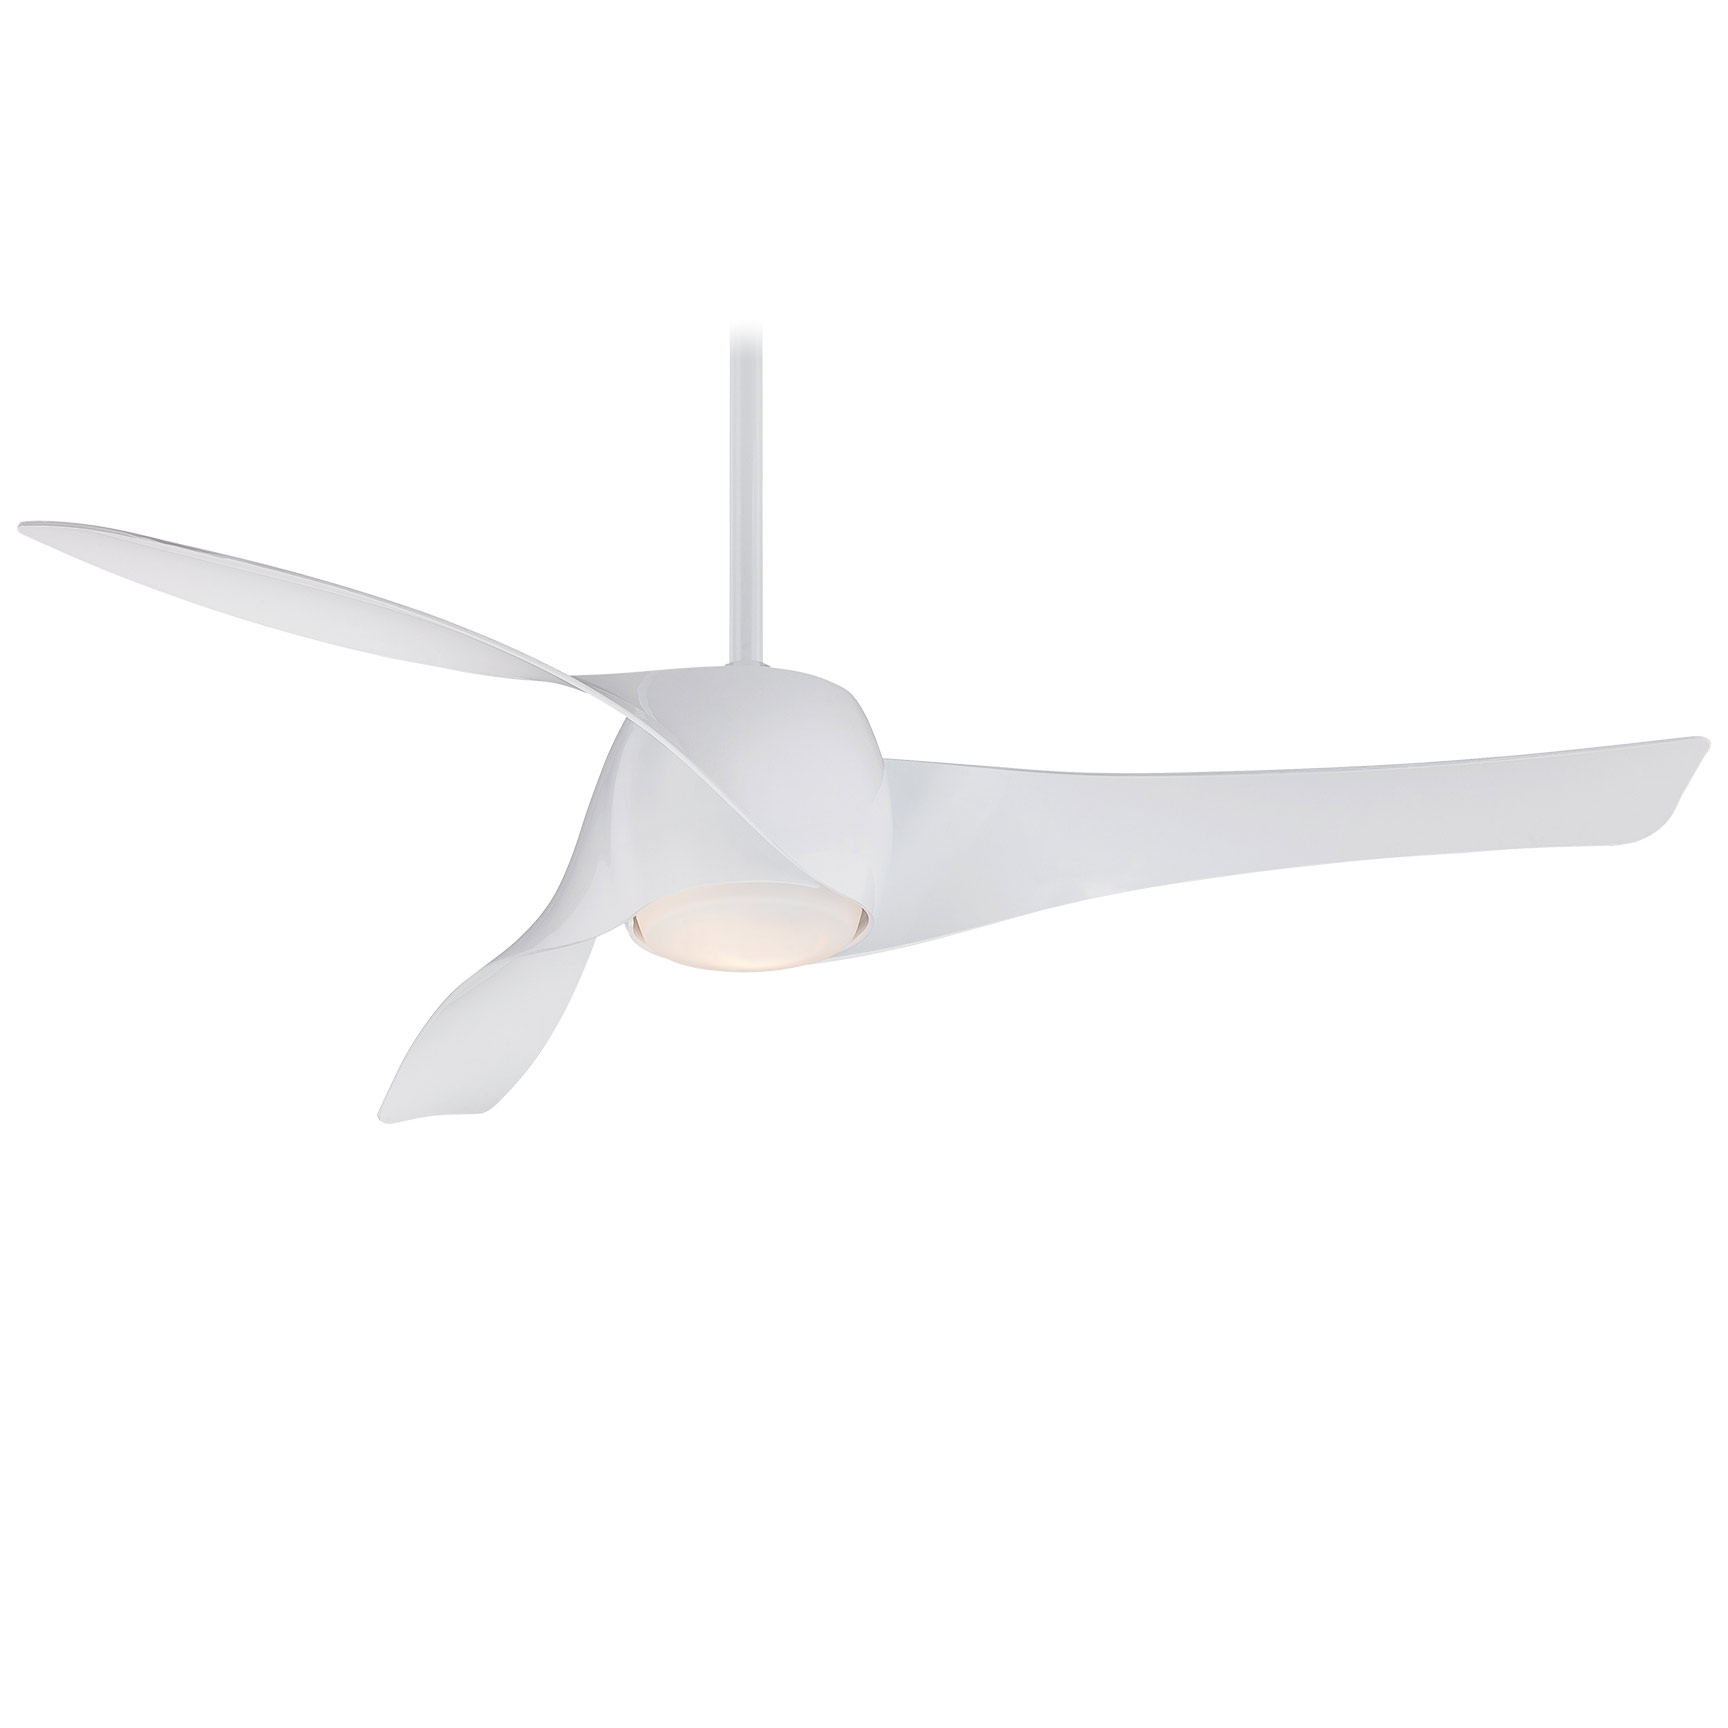 plus options wave type more ceiling minka fans with lamps kit fan manufacturer aire light white products